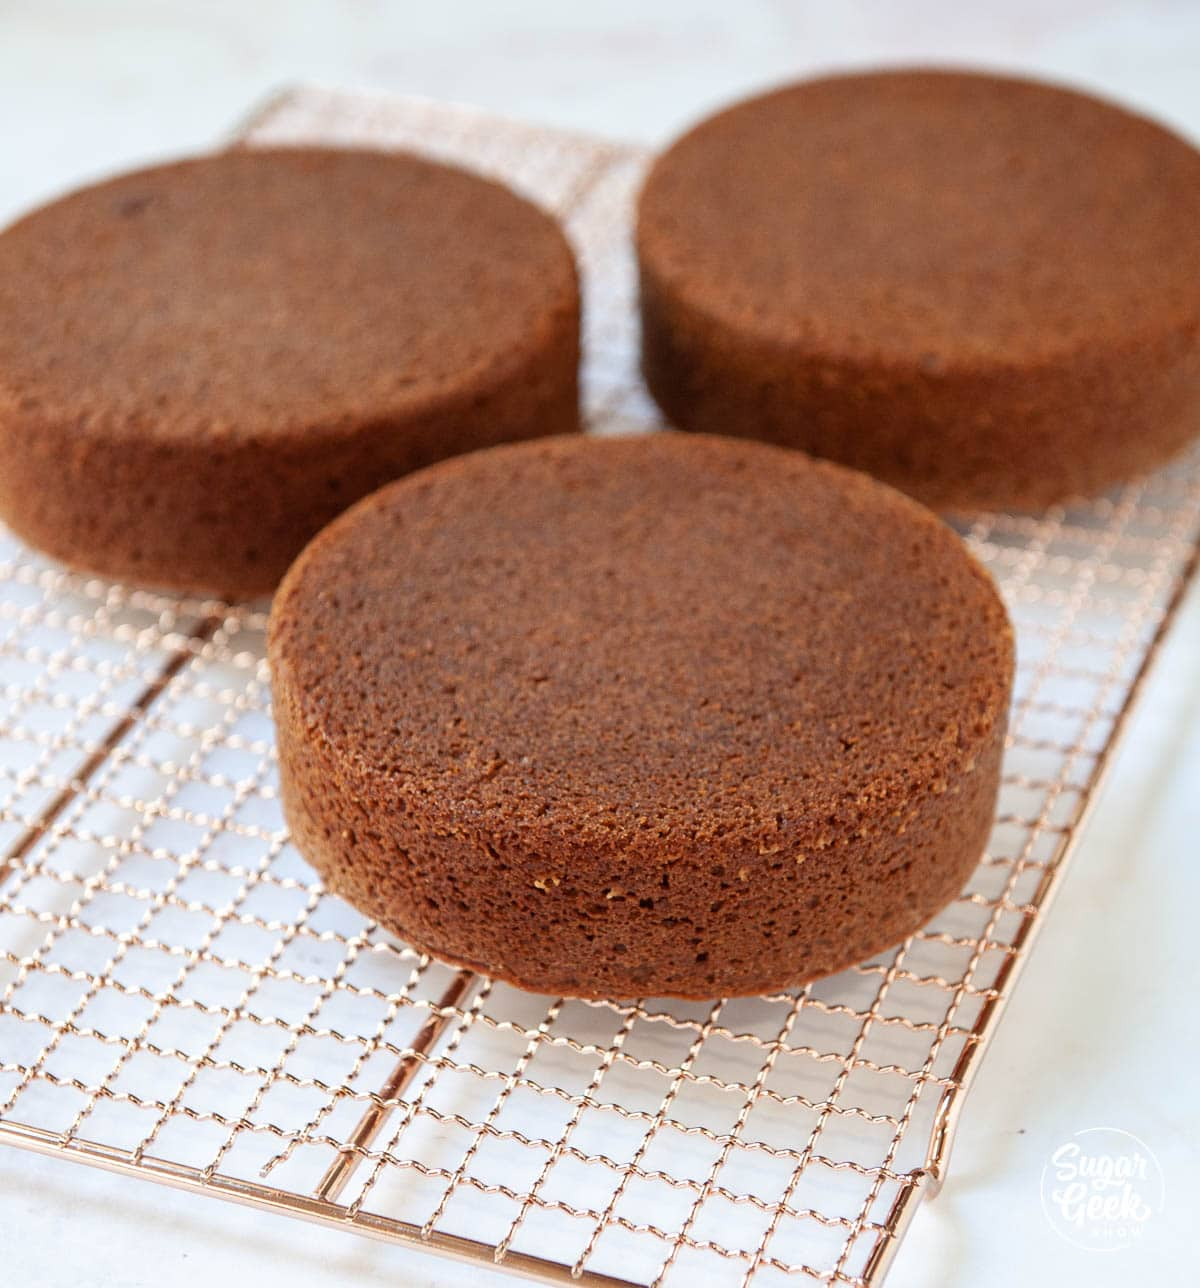 gingerbread cakes on a cooling rack